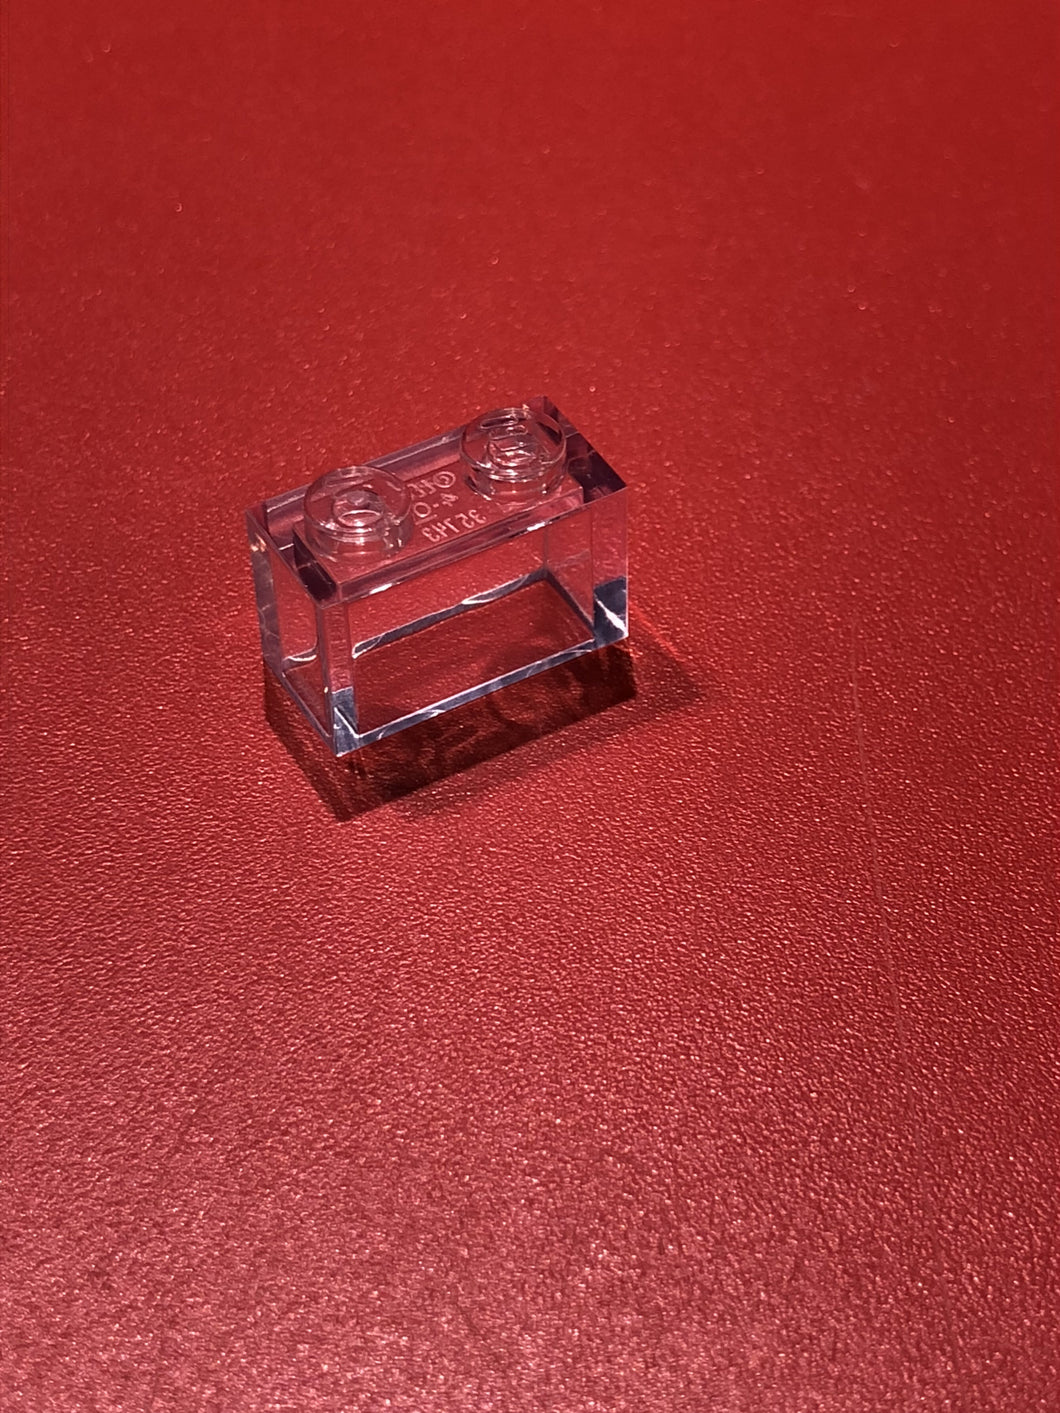 【レゴ】BRICK 1X2 W/O PIN TRANSPARENT